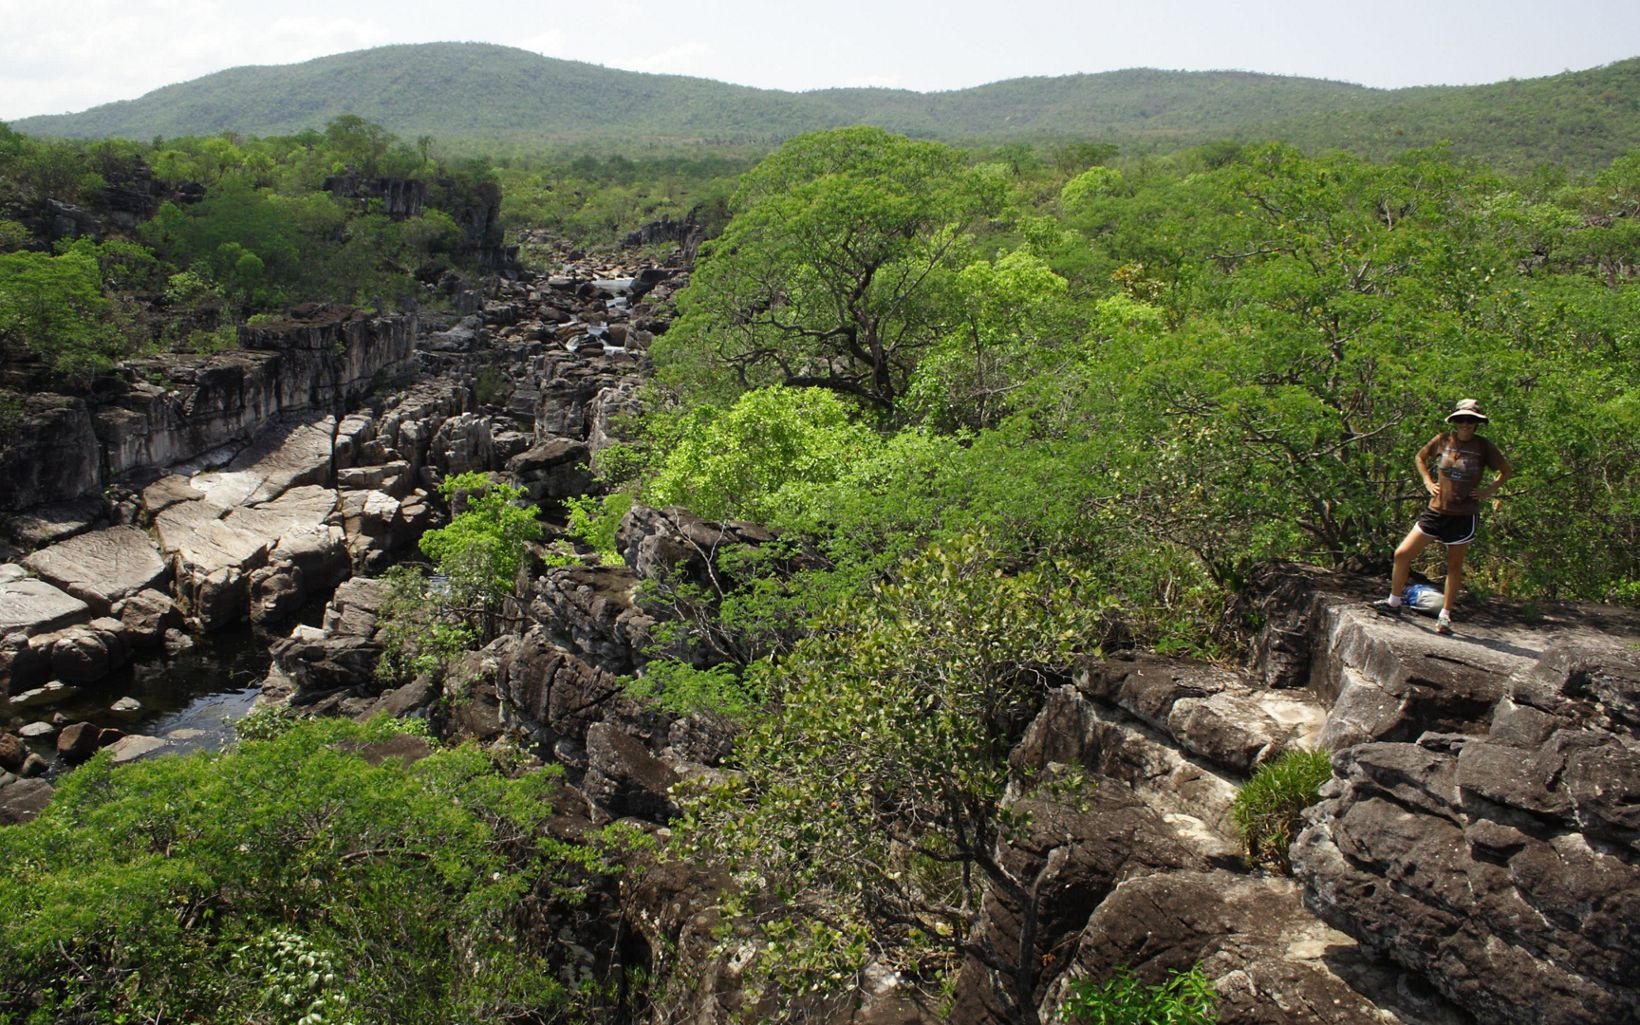 Canyon carved by the Rio Preto in Chapada dos Veadeiros National Park, Goiás State, Brazil.